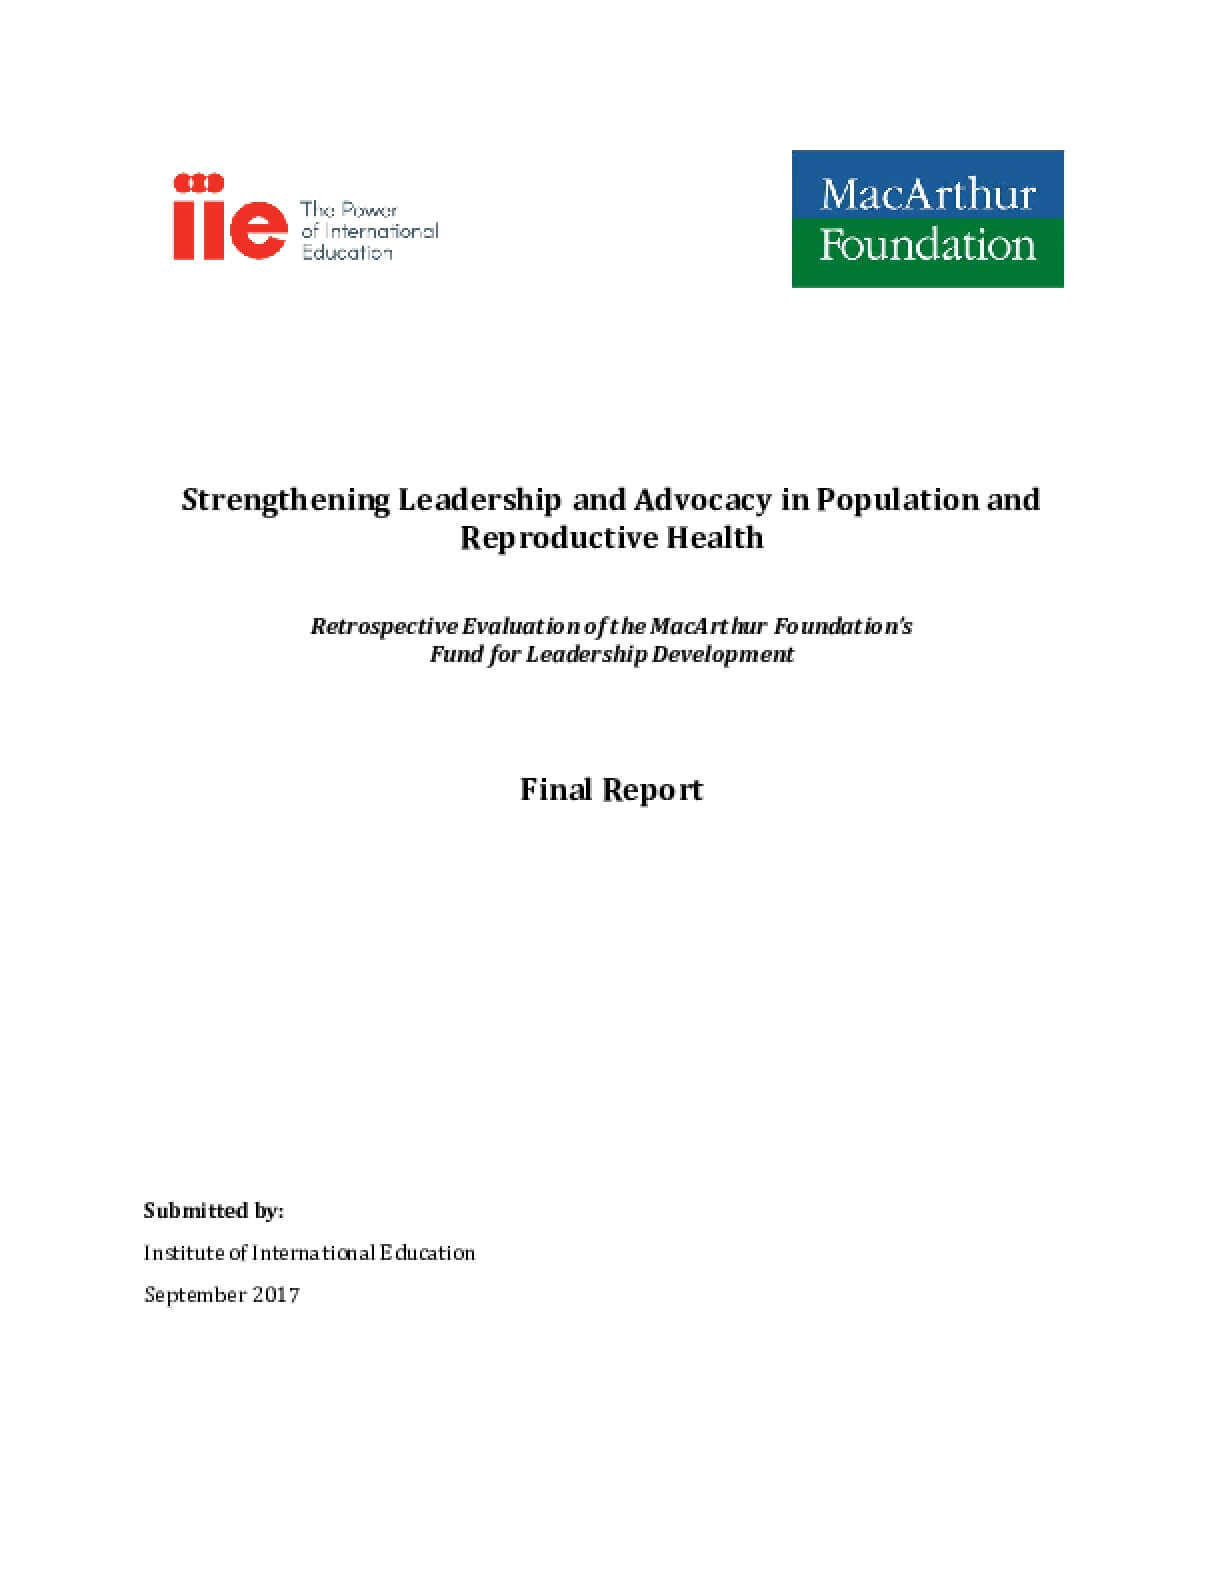 Strengthening Leadership and Advocacy in Population and Reproductive Health